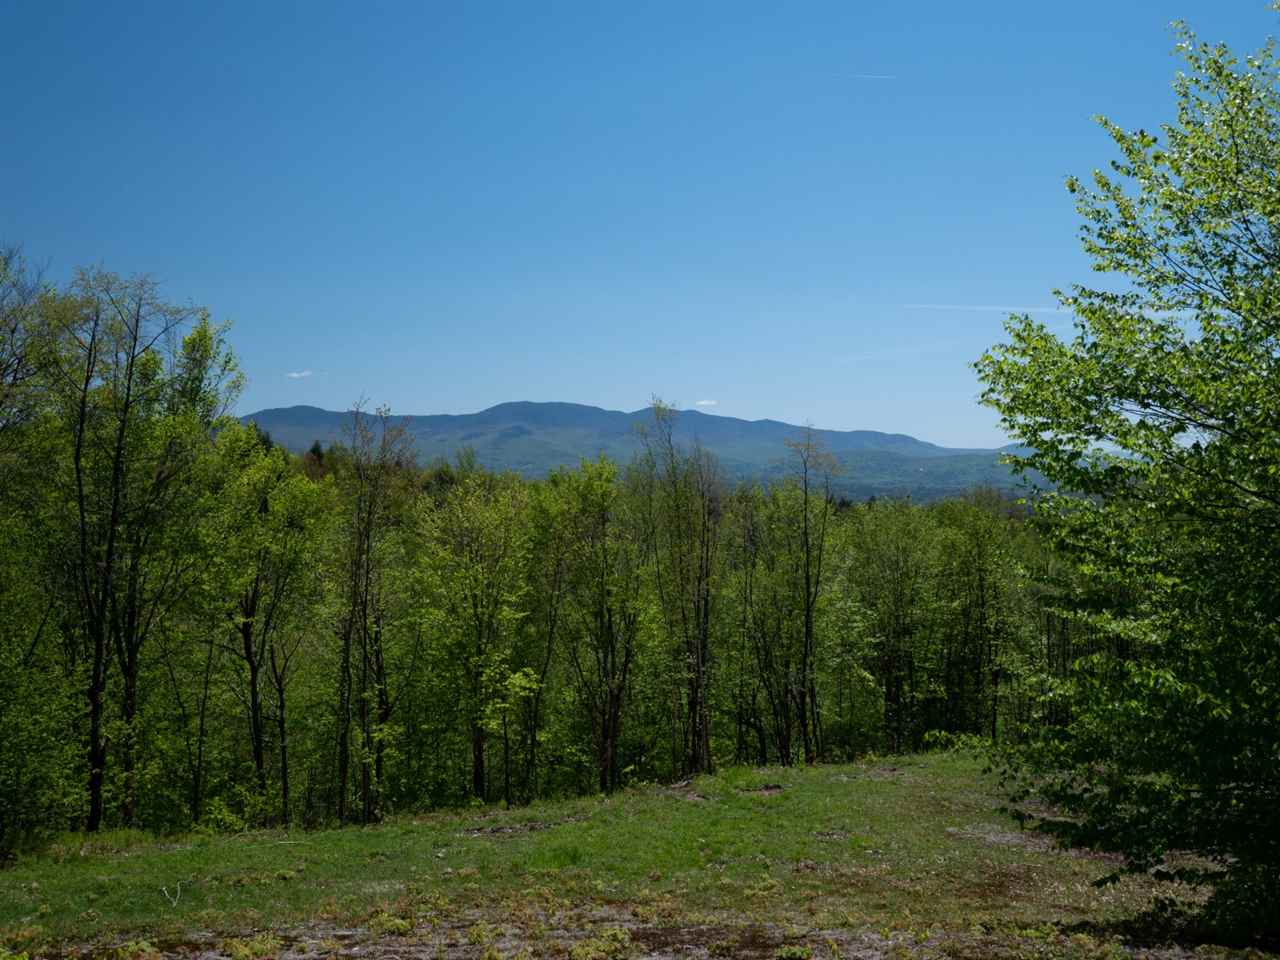 Property for sale at 333 (Lot 75) Thomas Pasture Lane, Stowe,  VT 05672